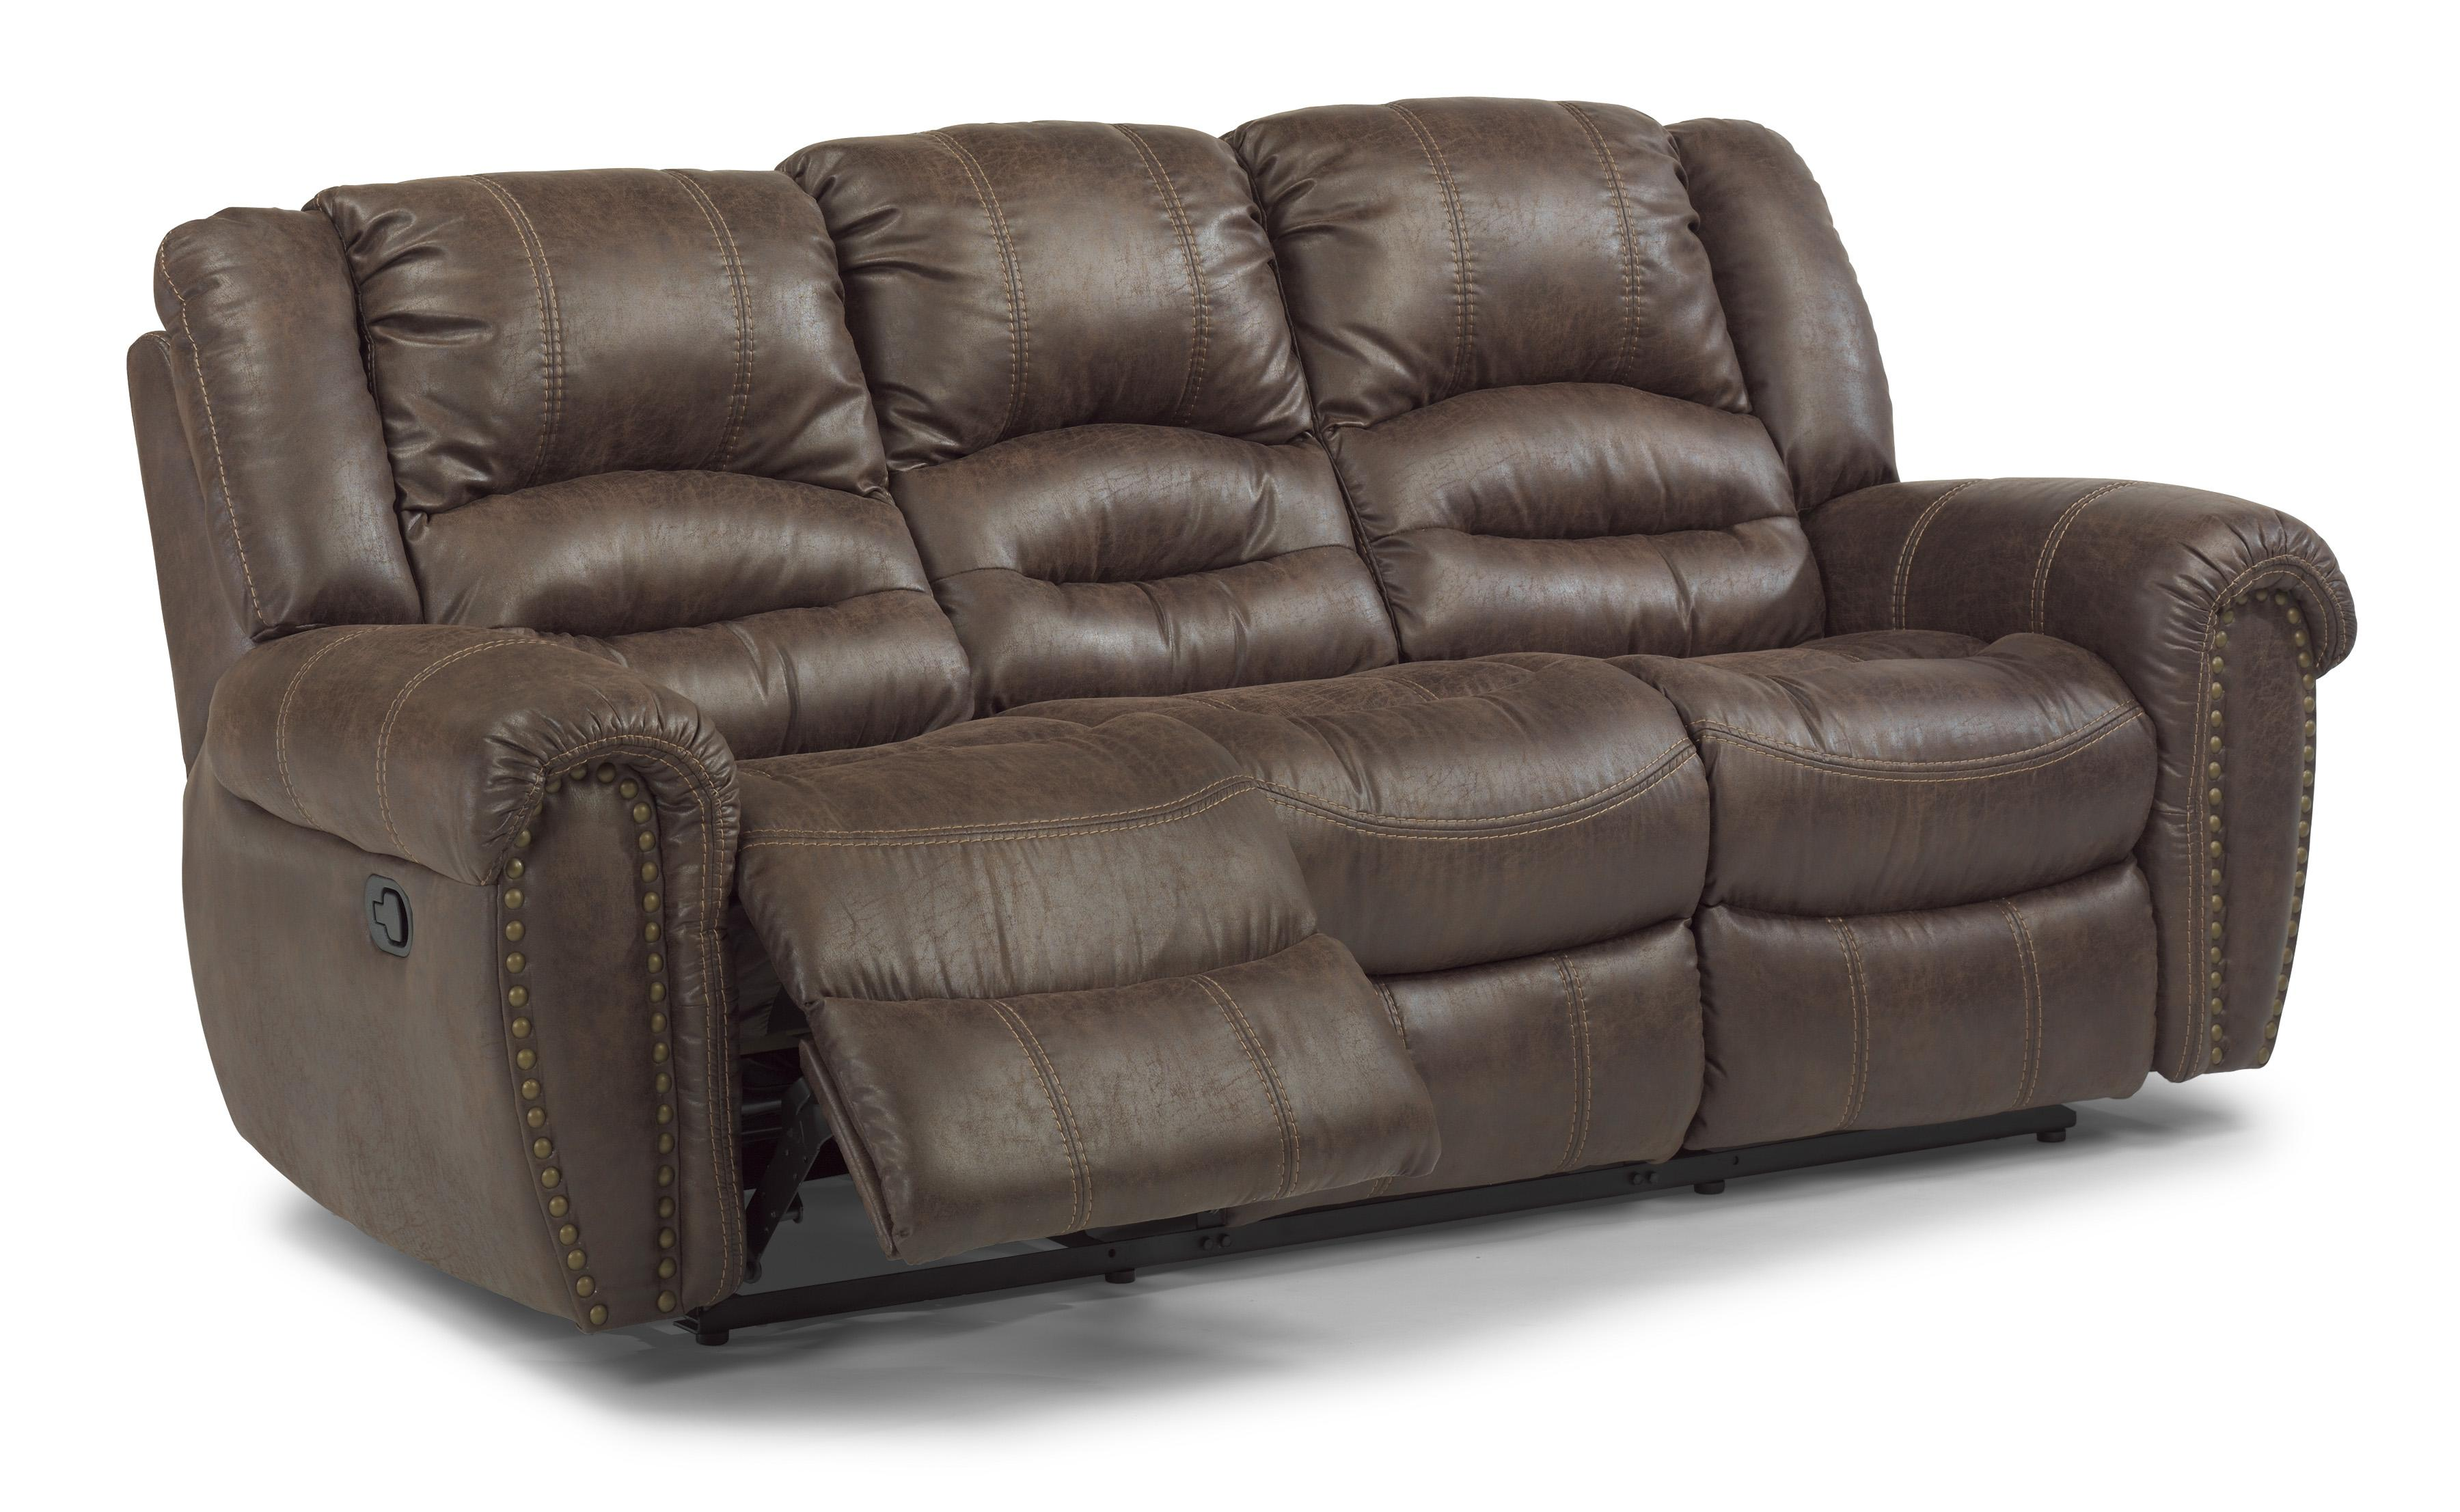 Flexsteel Latitudes - Downtown Double Power Reclining Sofa - Item Number: 1710-62P